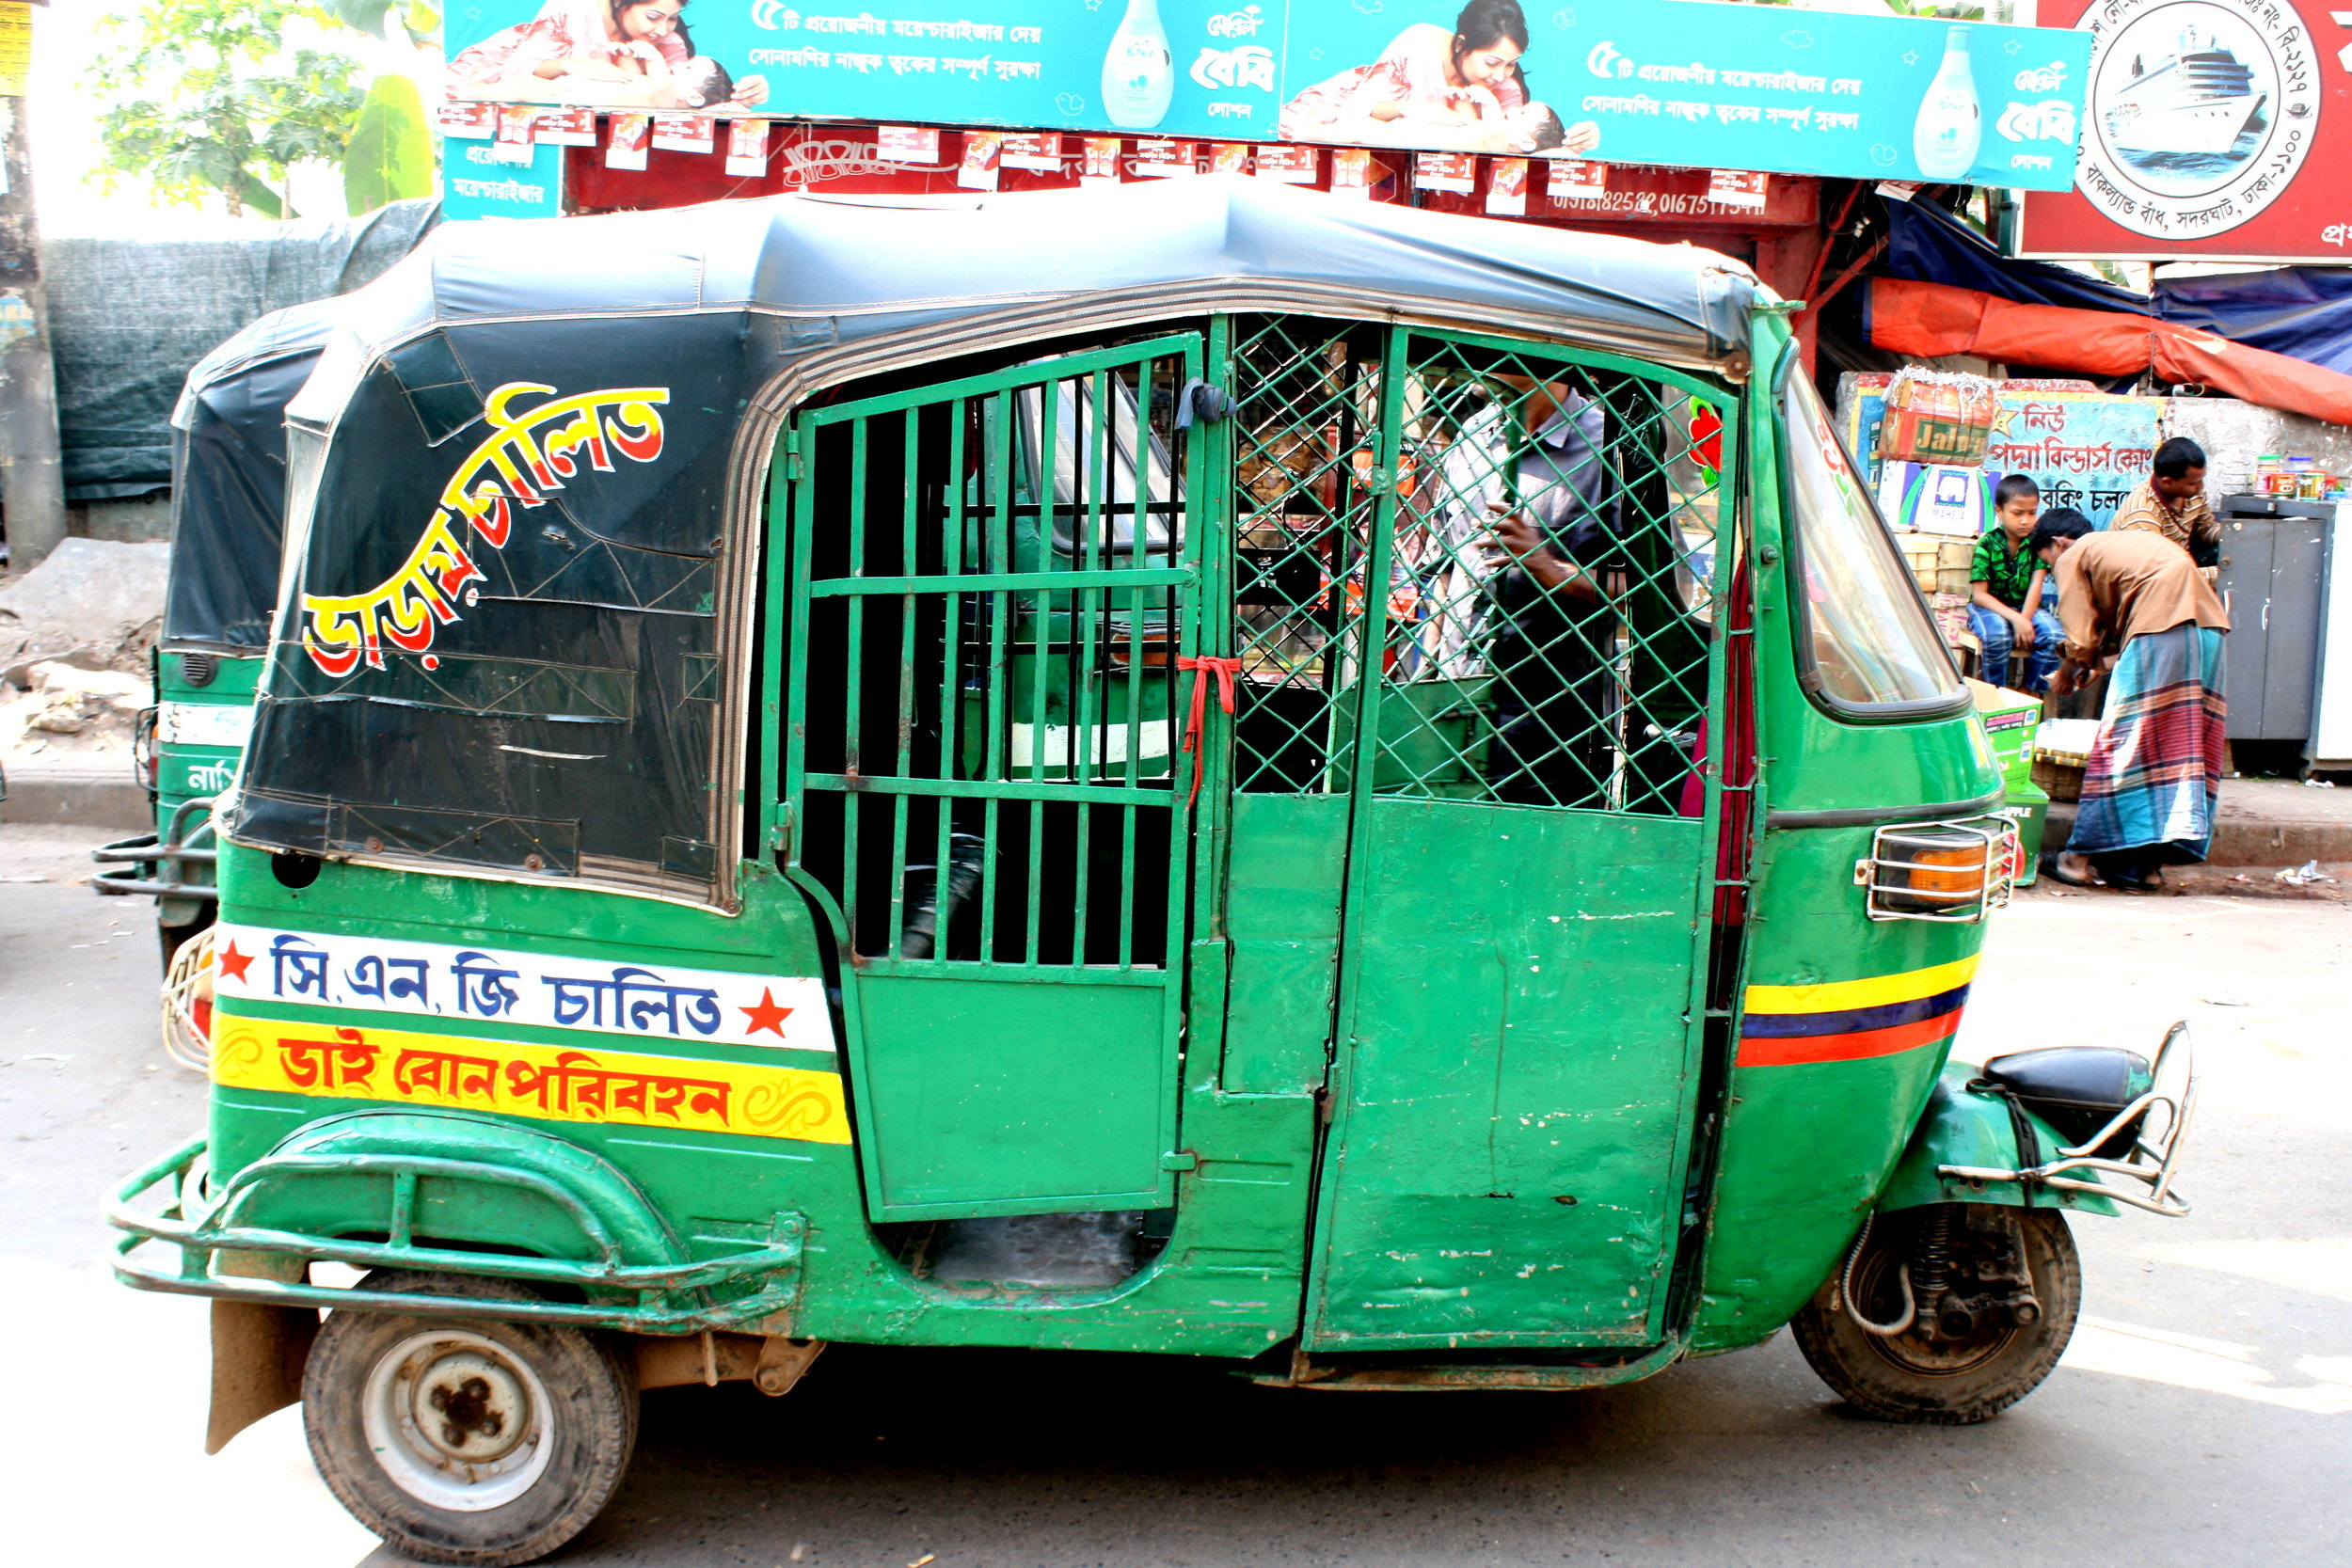 Credit: https://beardedvagabond.wordpress.com/2013/01/10/dhaka-the-heart-of-madness/baby-taxi-cng-dhaka/